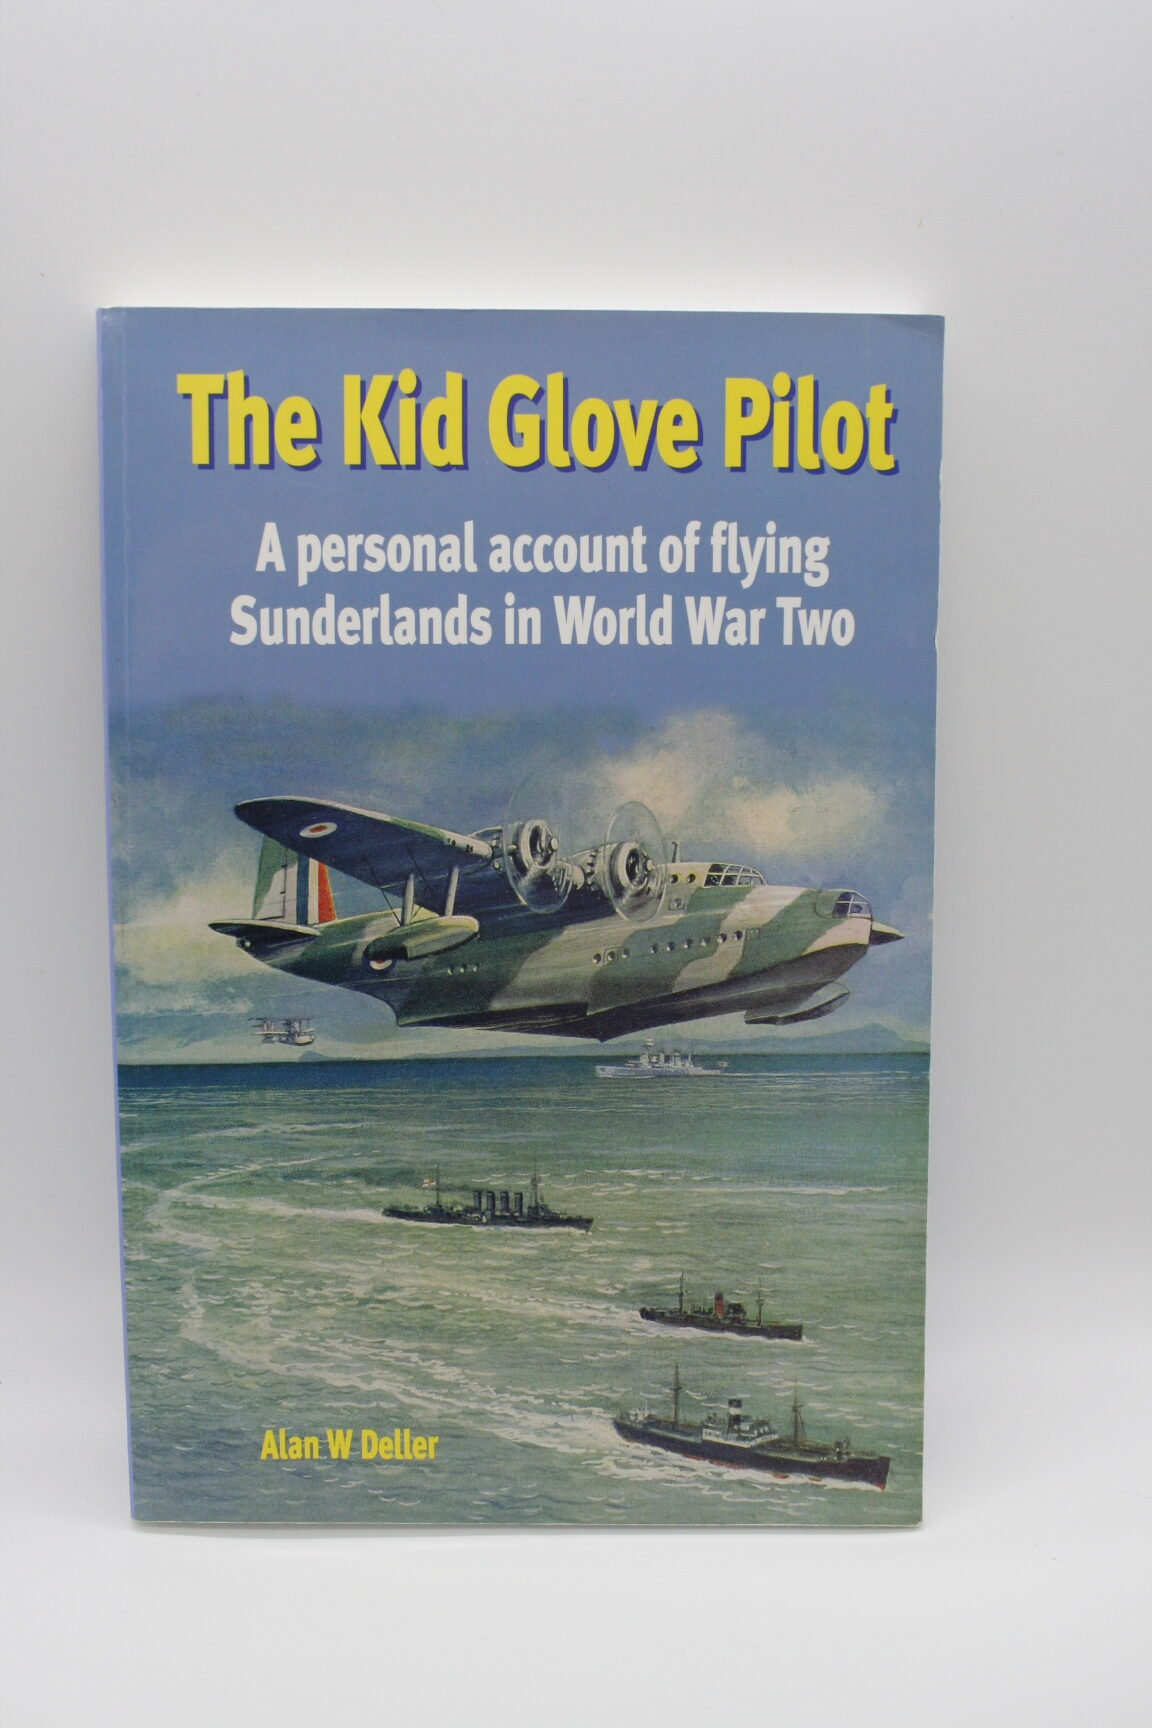 The Kid Glove Pilot: A personal account of flying Sunderlands in WW2 - Alan W Deller